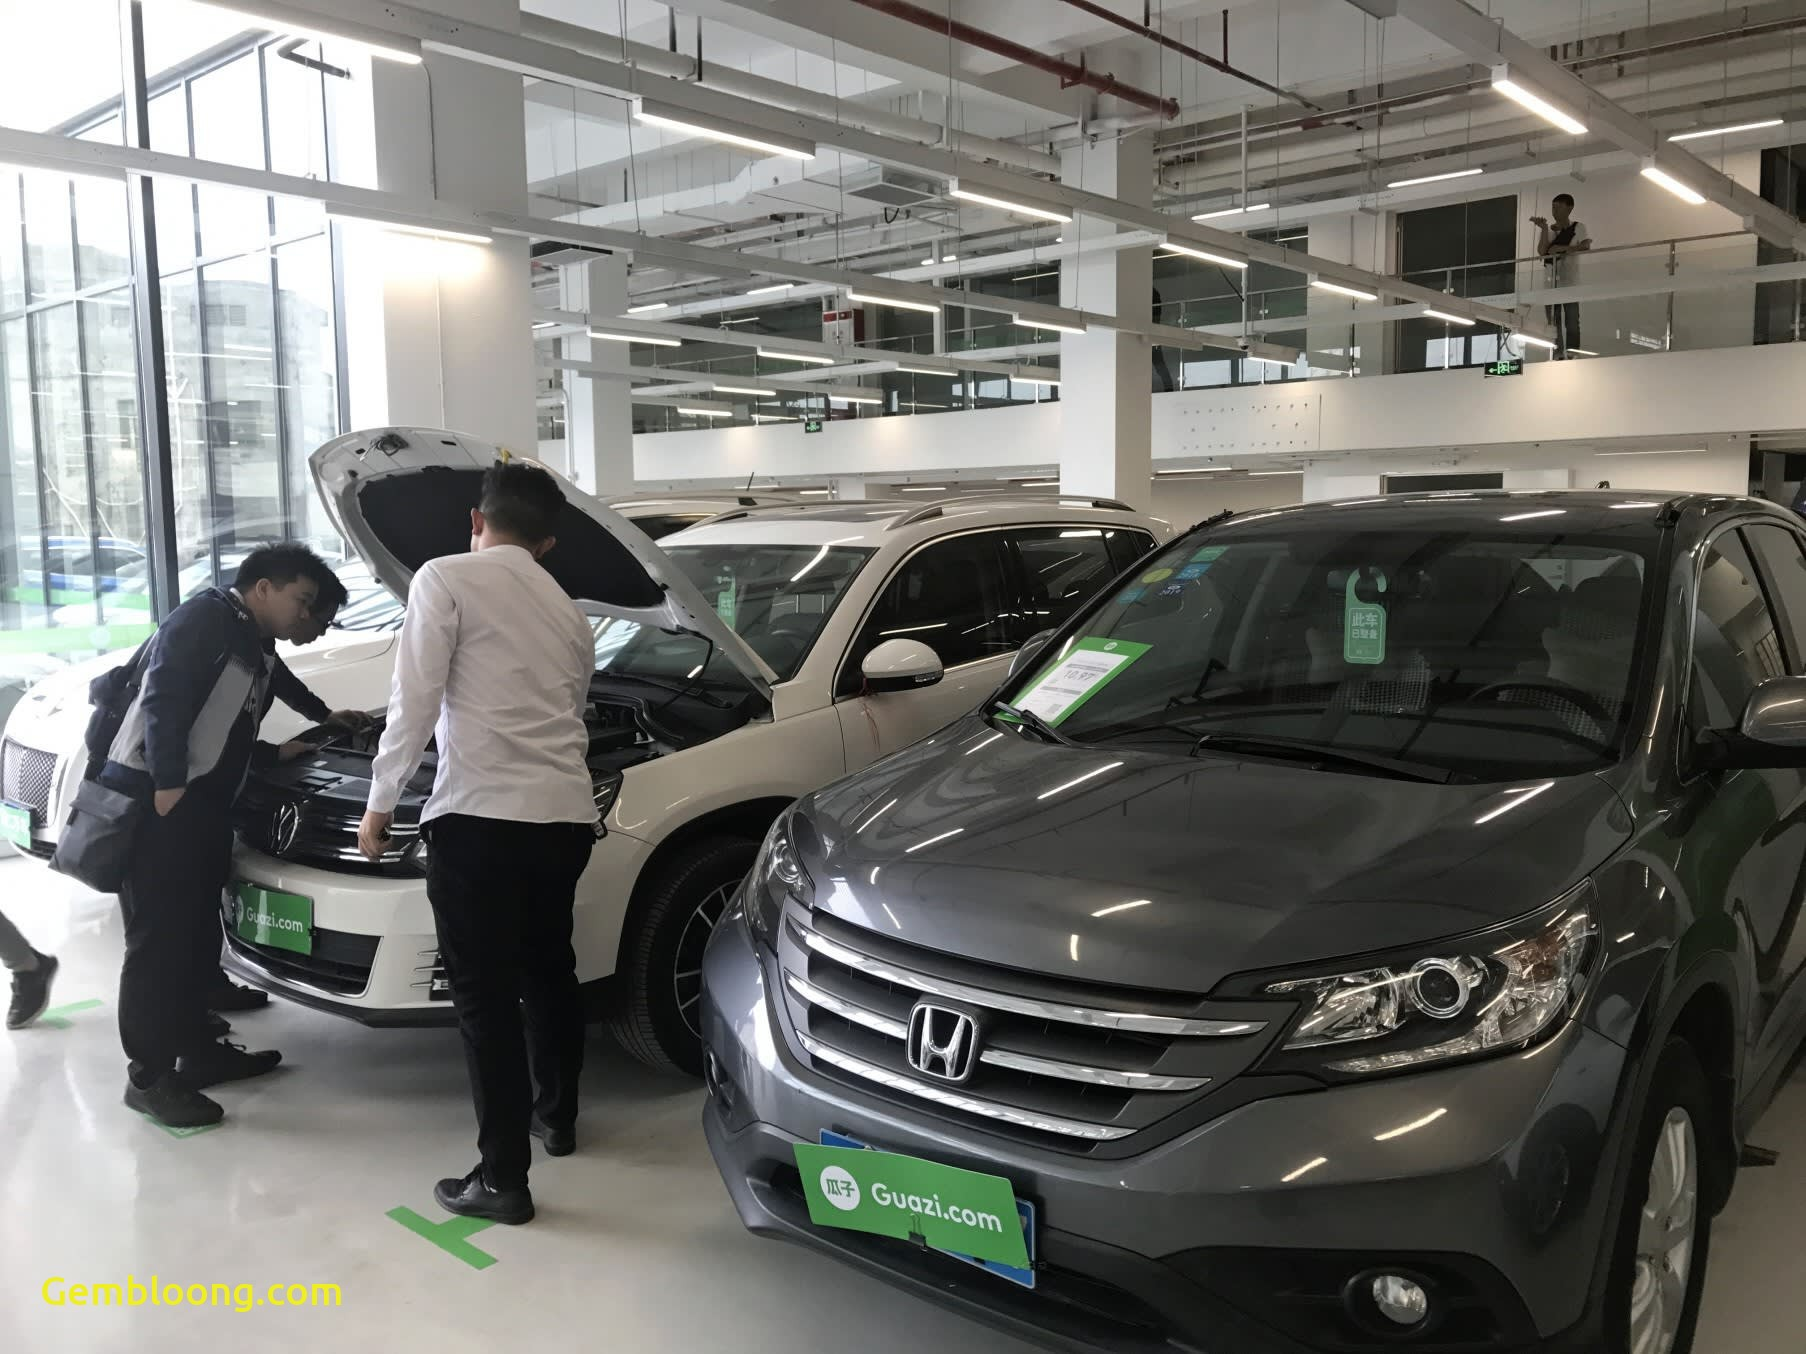 Used Car Dealerships New softbank Vision Fund Invests $1 5bn In Chinese Used Car Platform